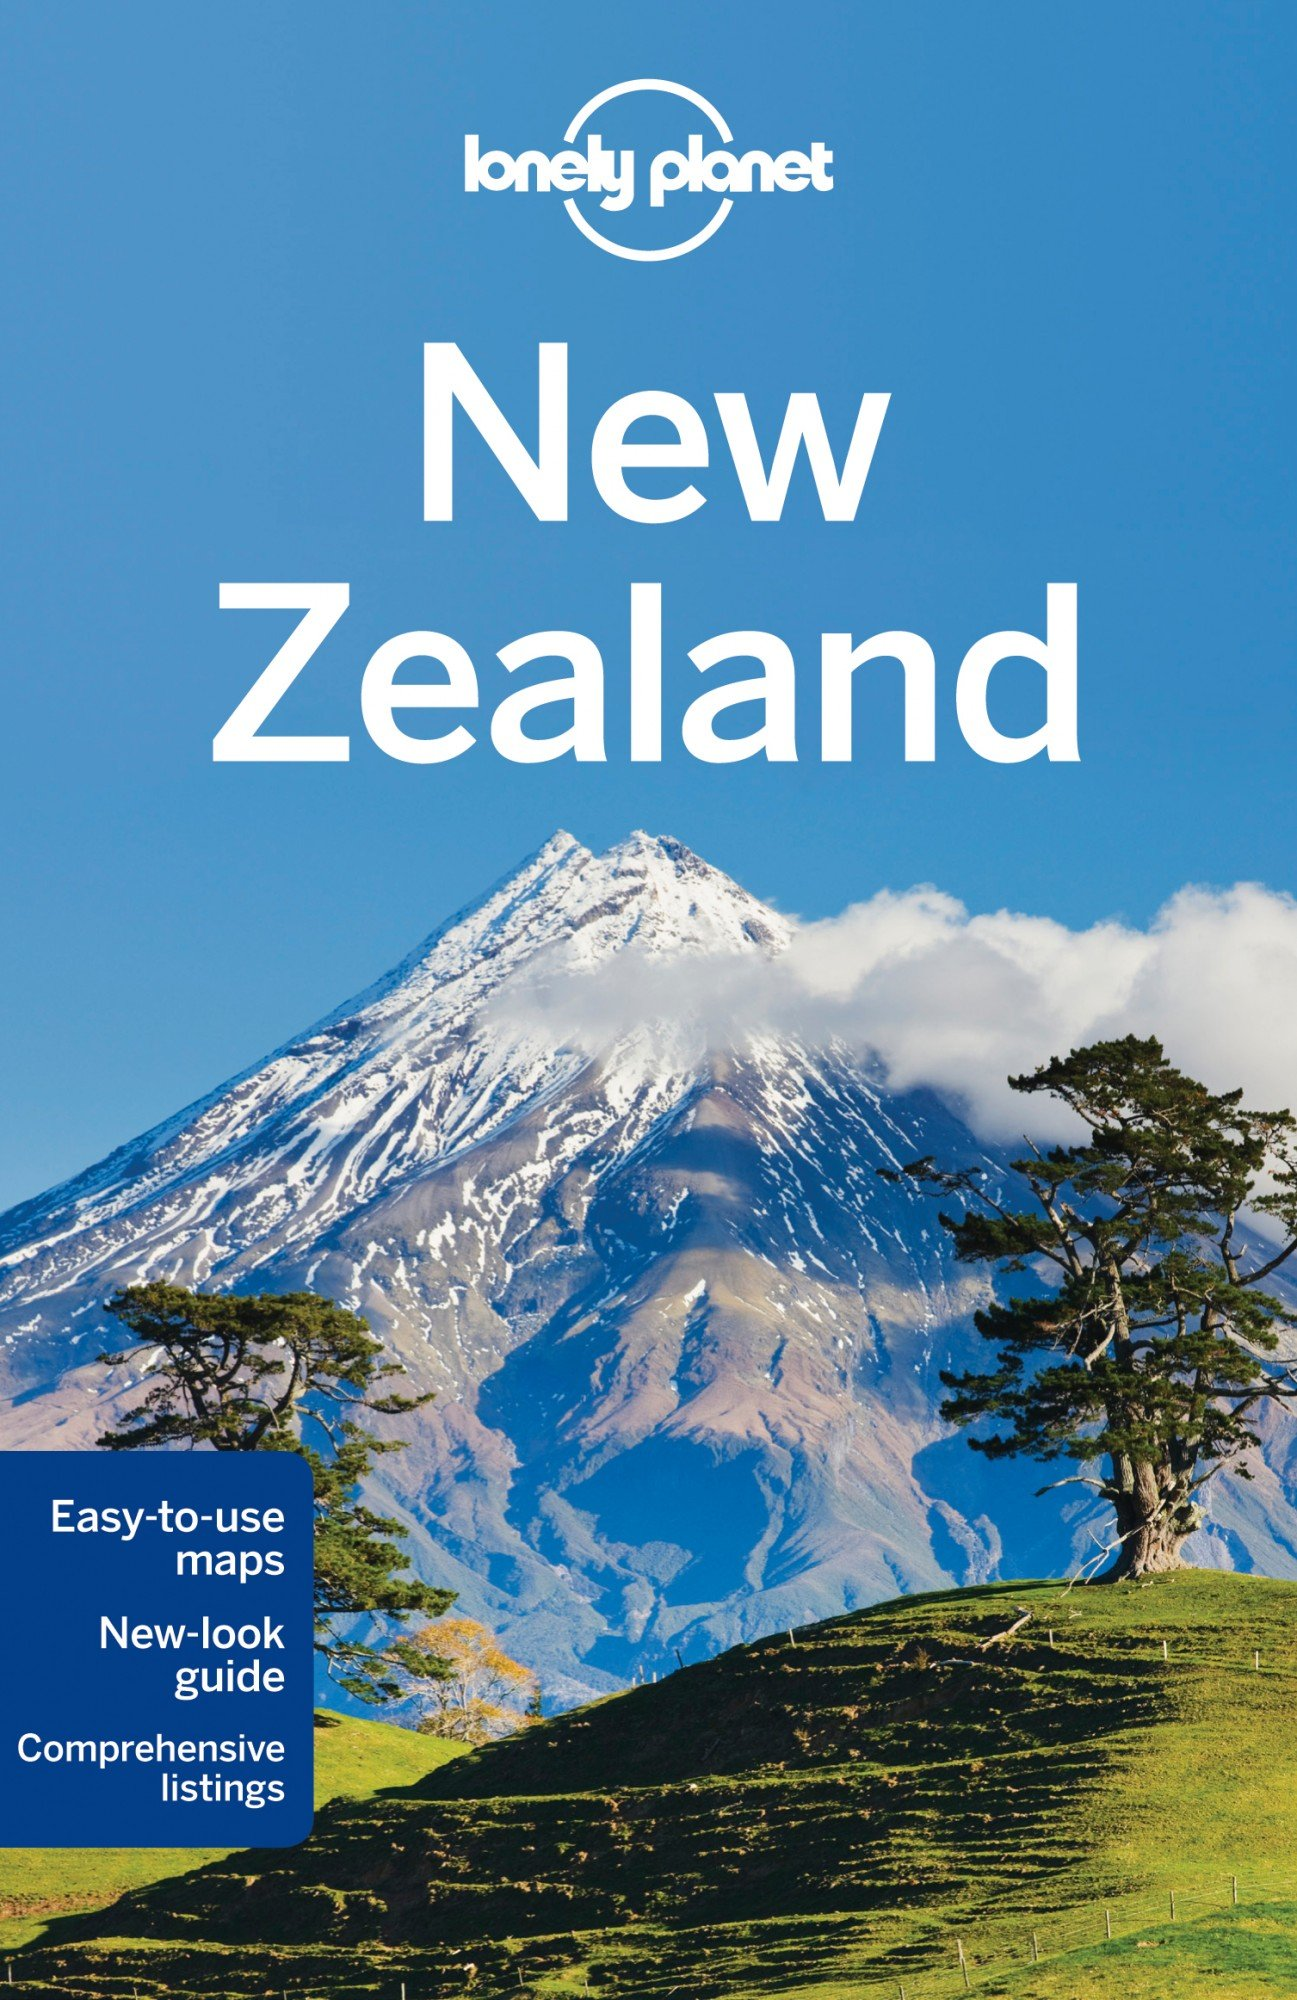 Lonely Planet New Zealand (travel Guide): Lonely Planet, Charles  Rawlingsway, Brett Atkinson, Sarah Bennett, Peter Dragicevich:  9781742200170: Amazon: